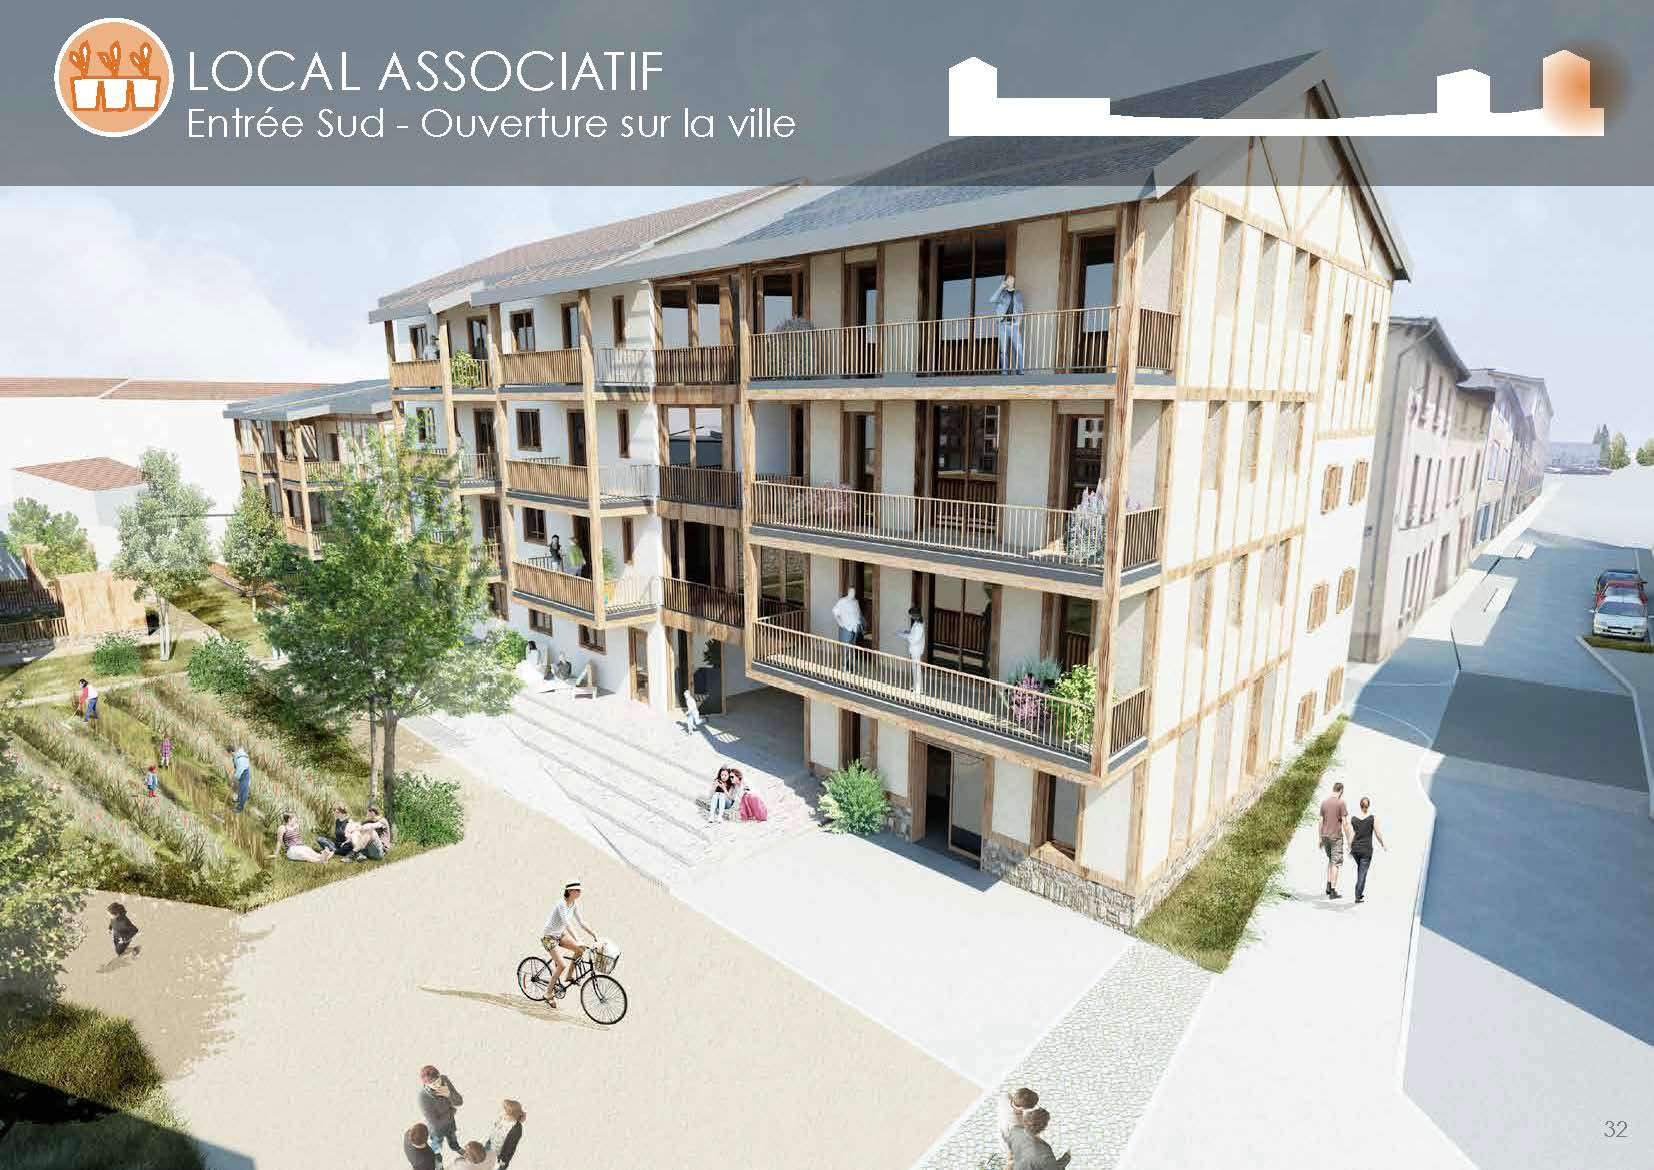 5_Local asso_plan_Page_032.jpg